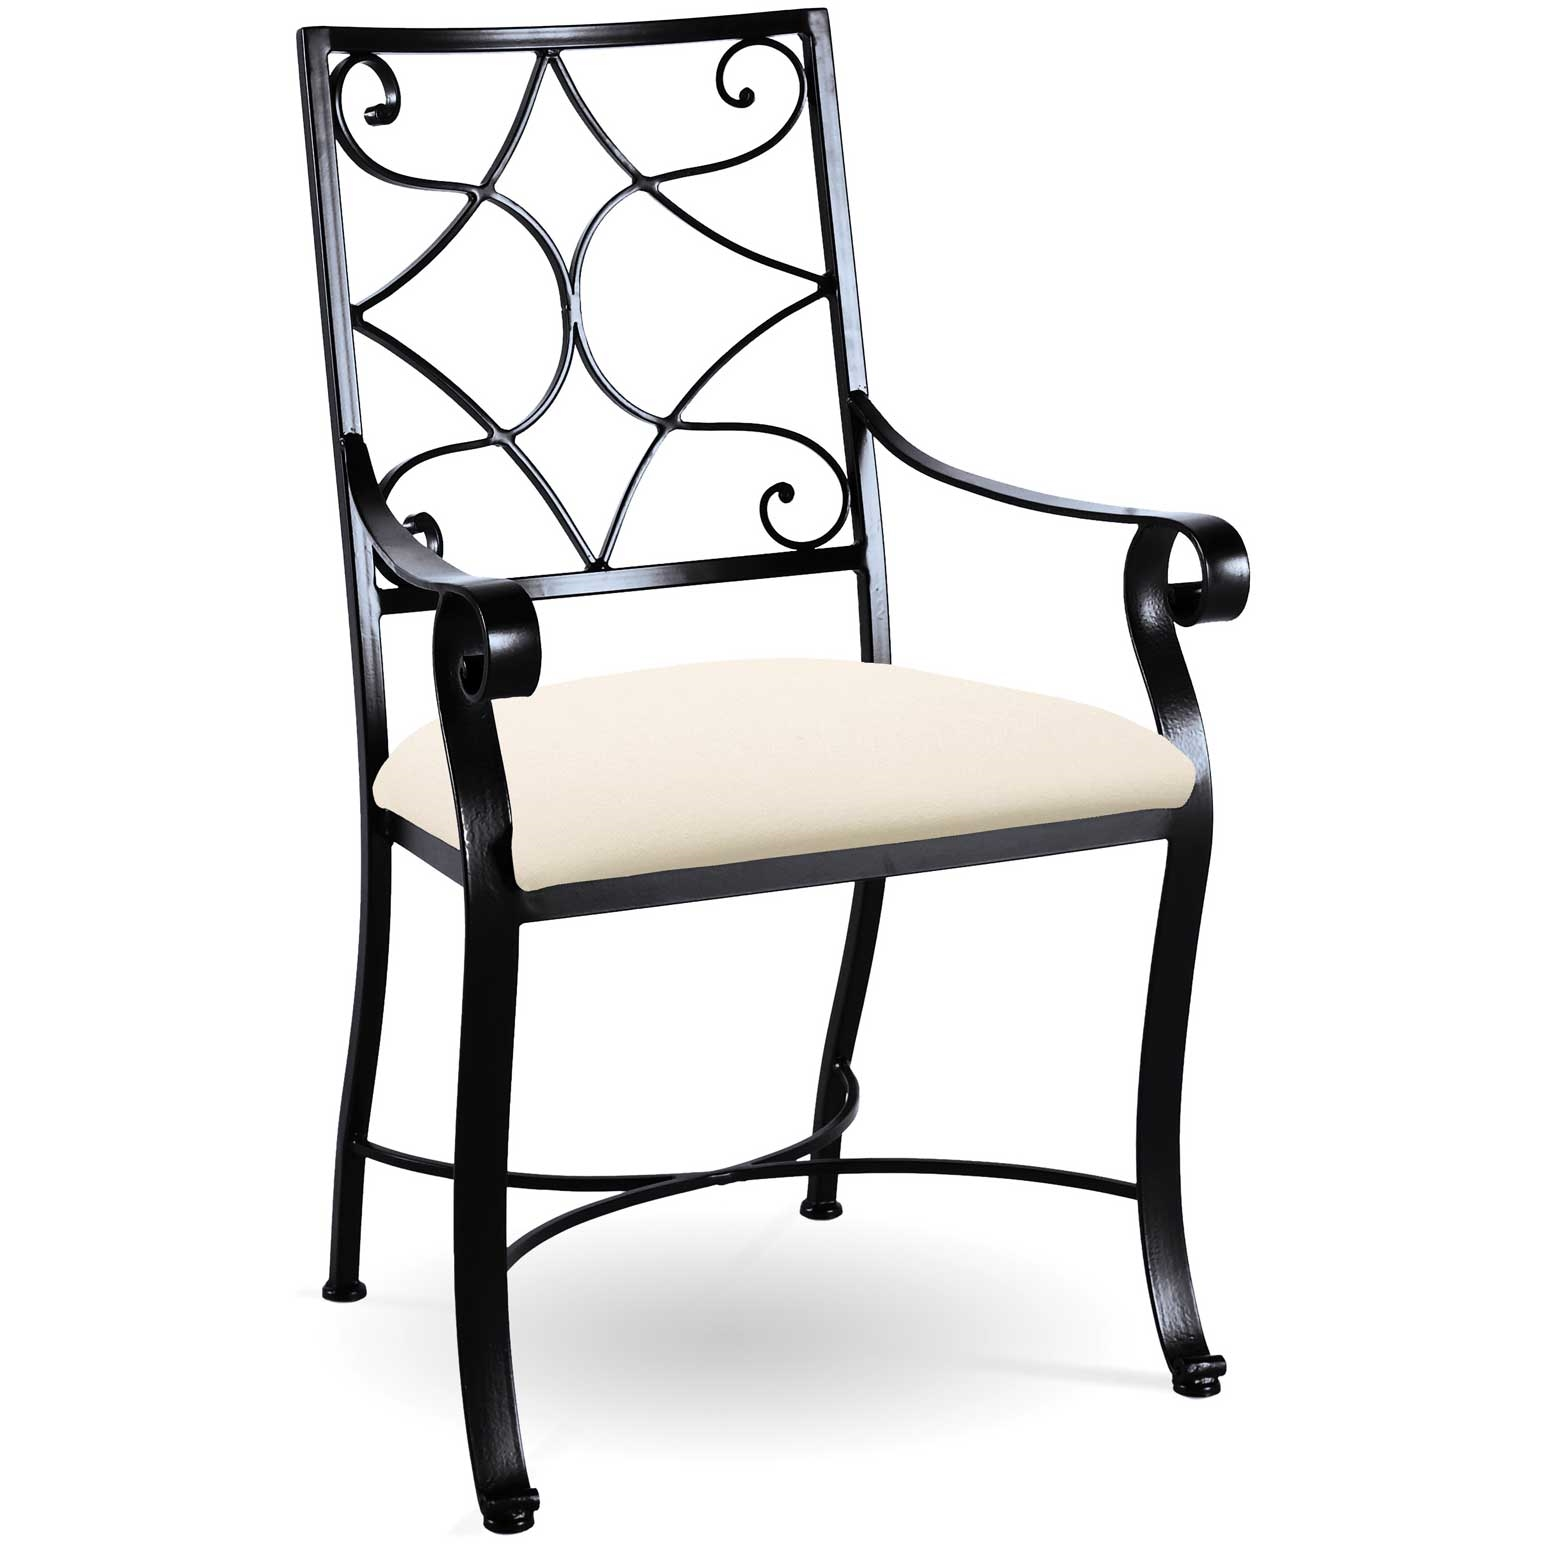 Pictured Here Is The Camino Scroll Dining Chair